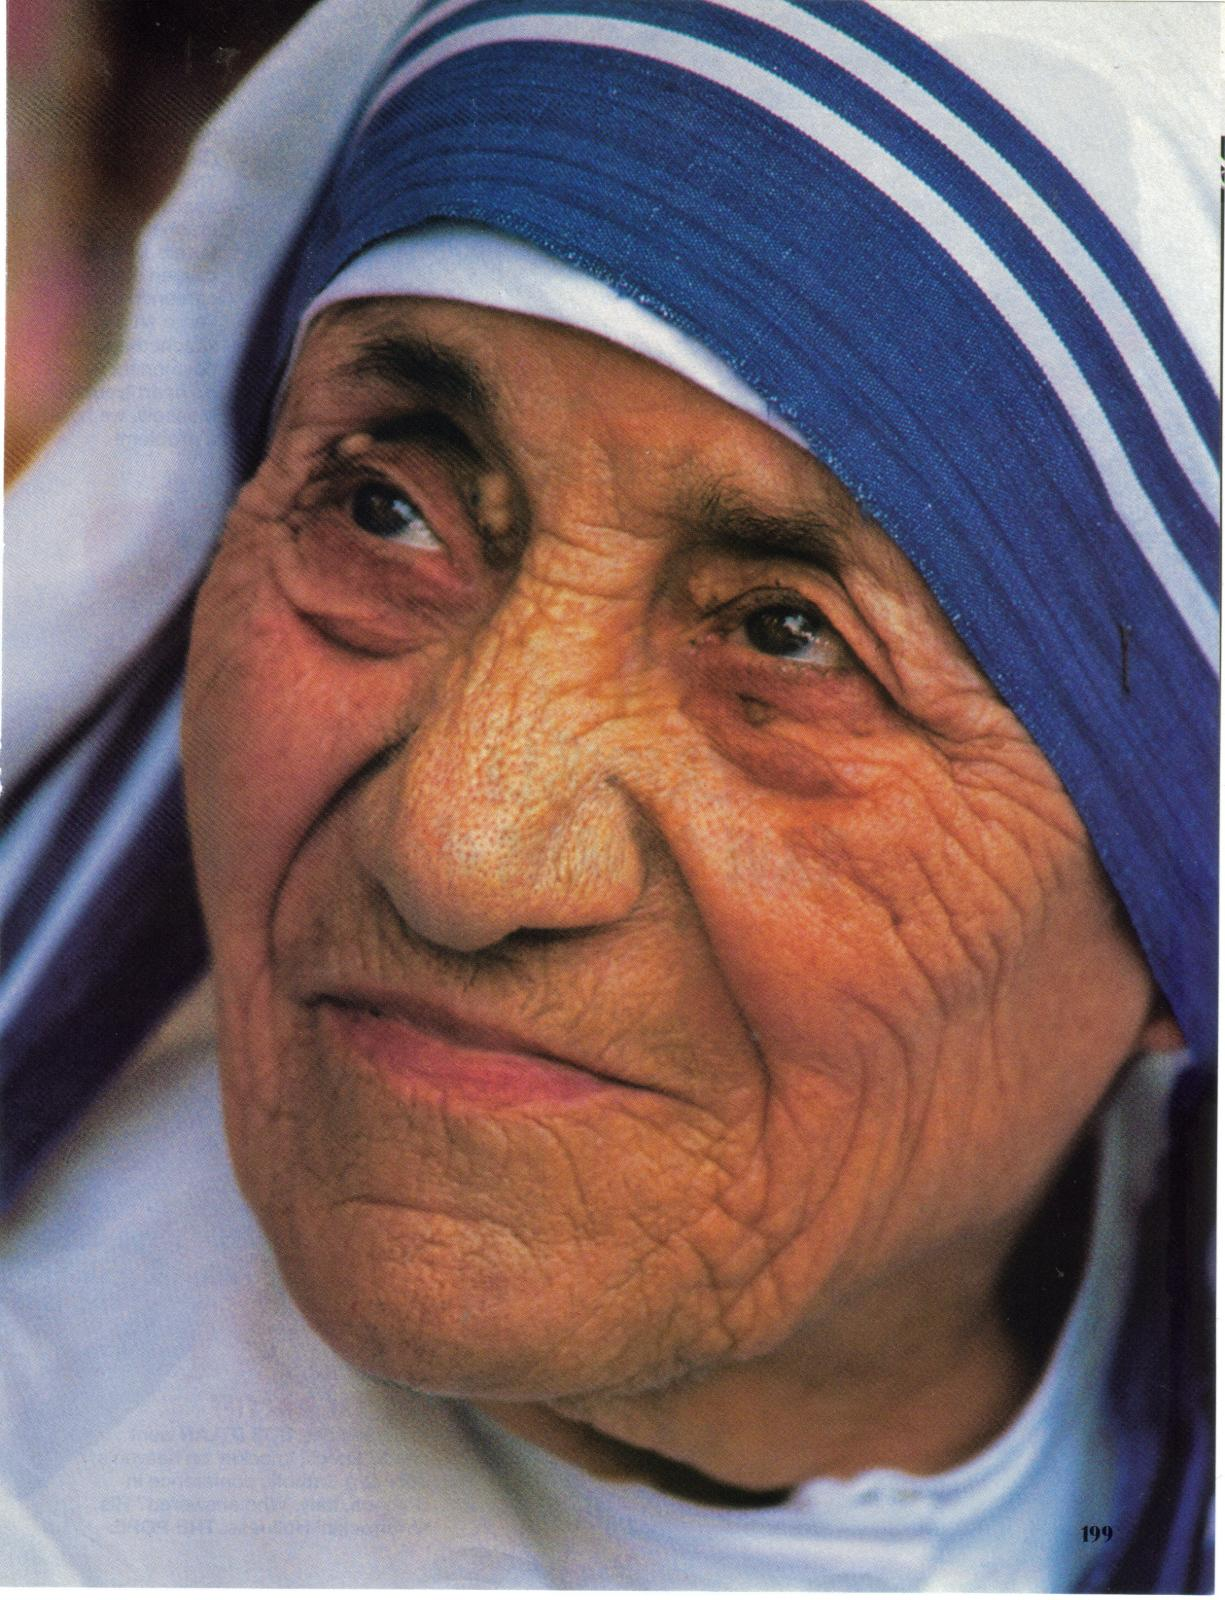 mother-teresa-pics-0101.jpg